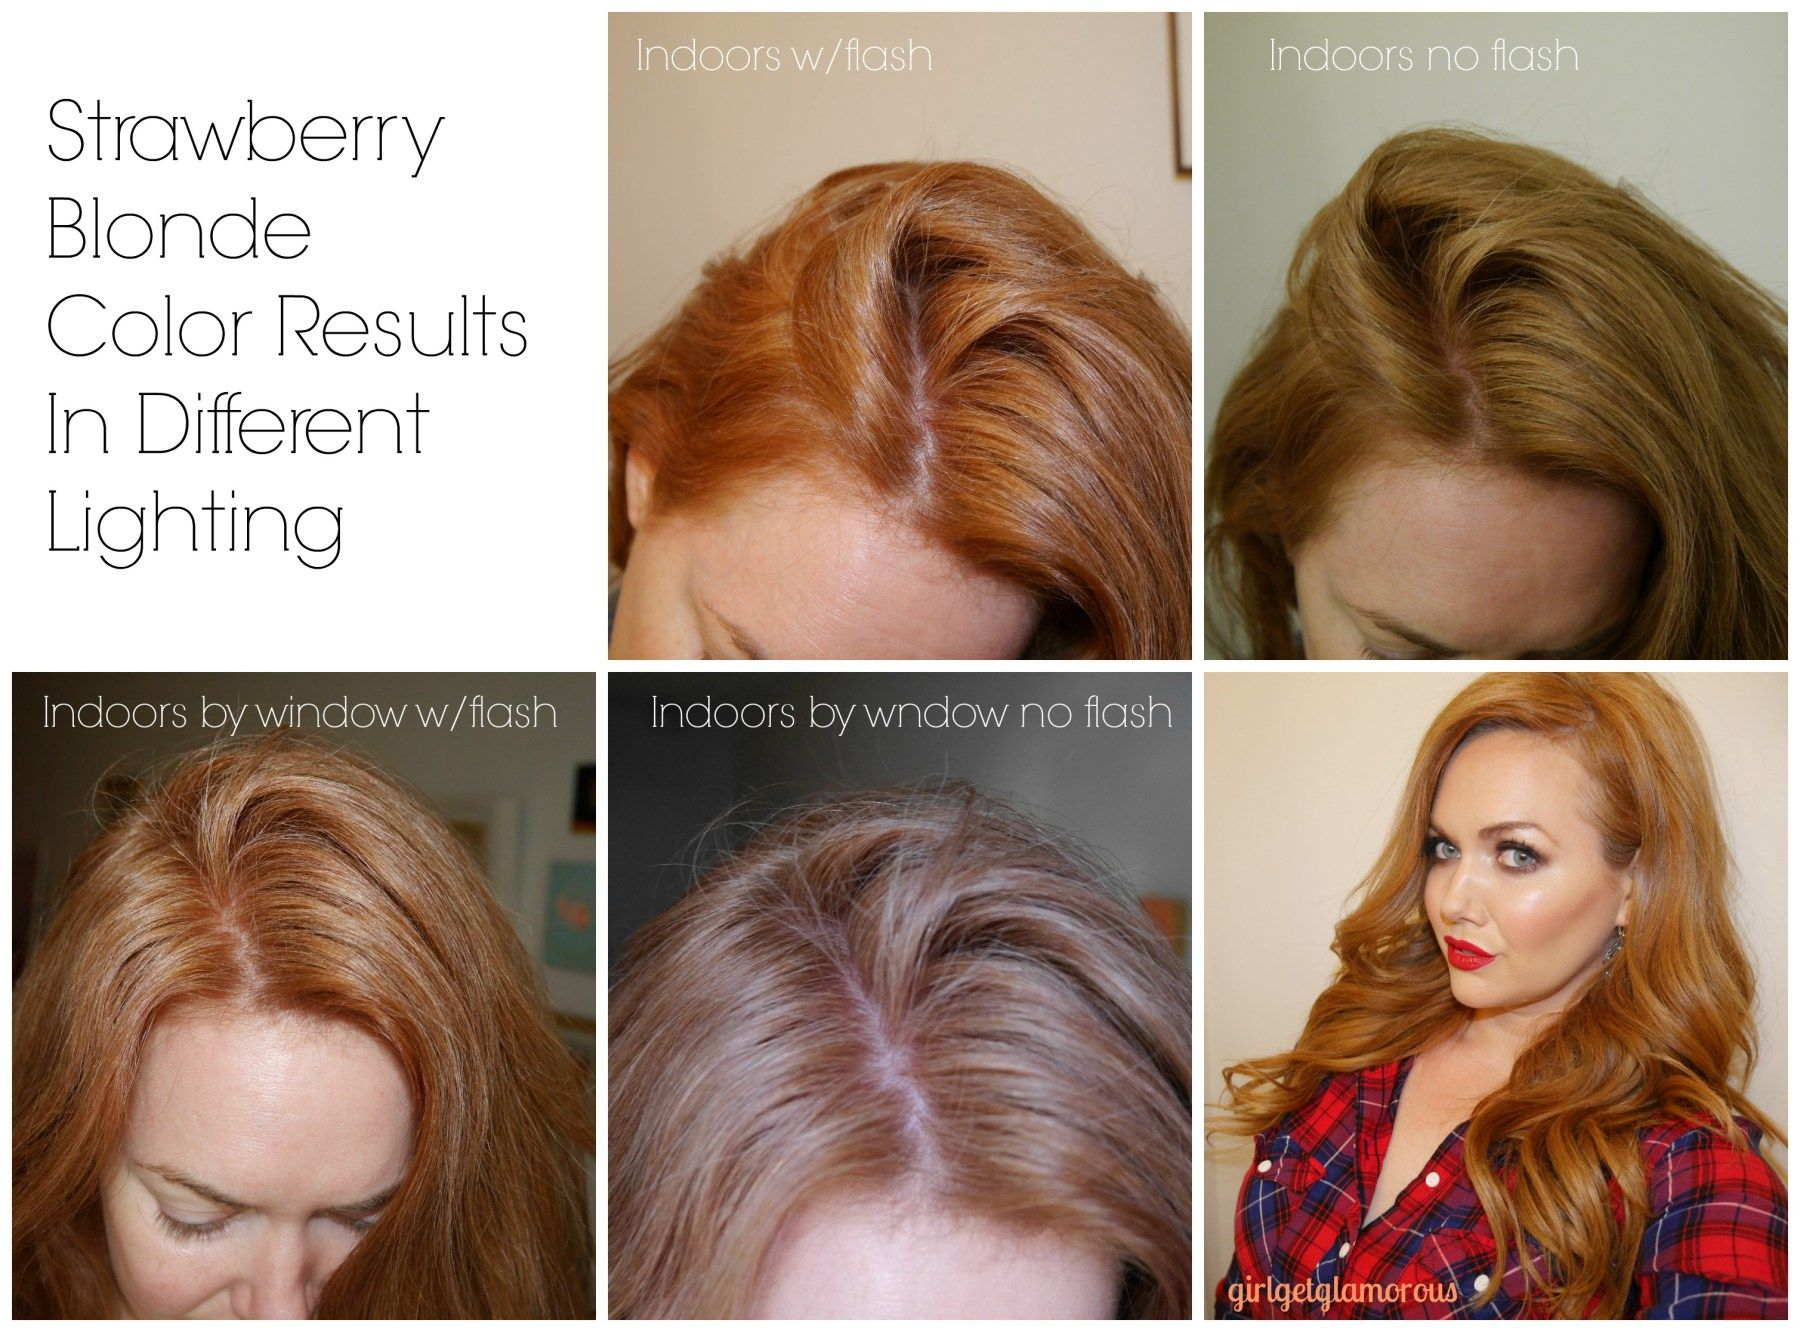 How To Get Strawberry Blonde Hair At Home Diy Guide Part 2 Girlgetglamorous Blonde Hair At Home Light Strawberry Blonde Strawberry Blonde Hair